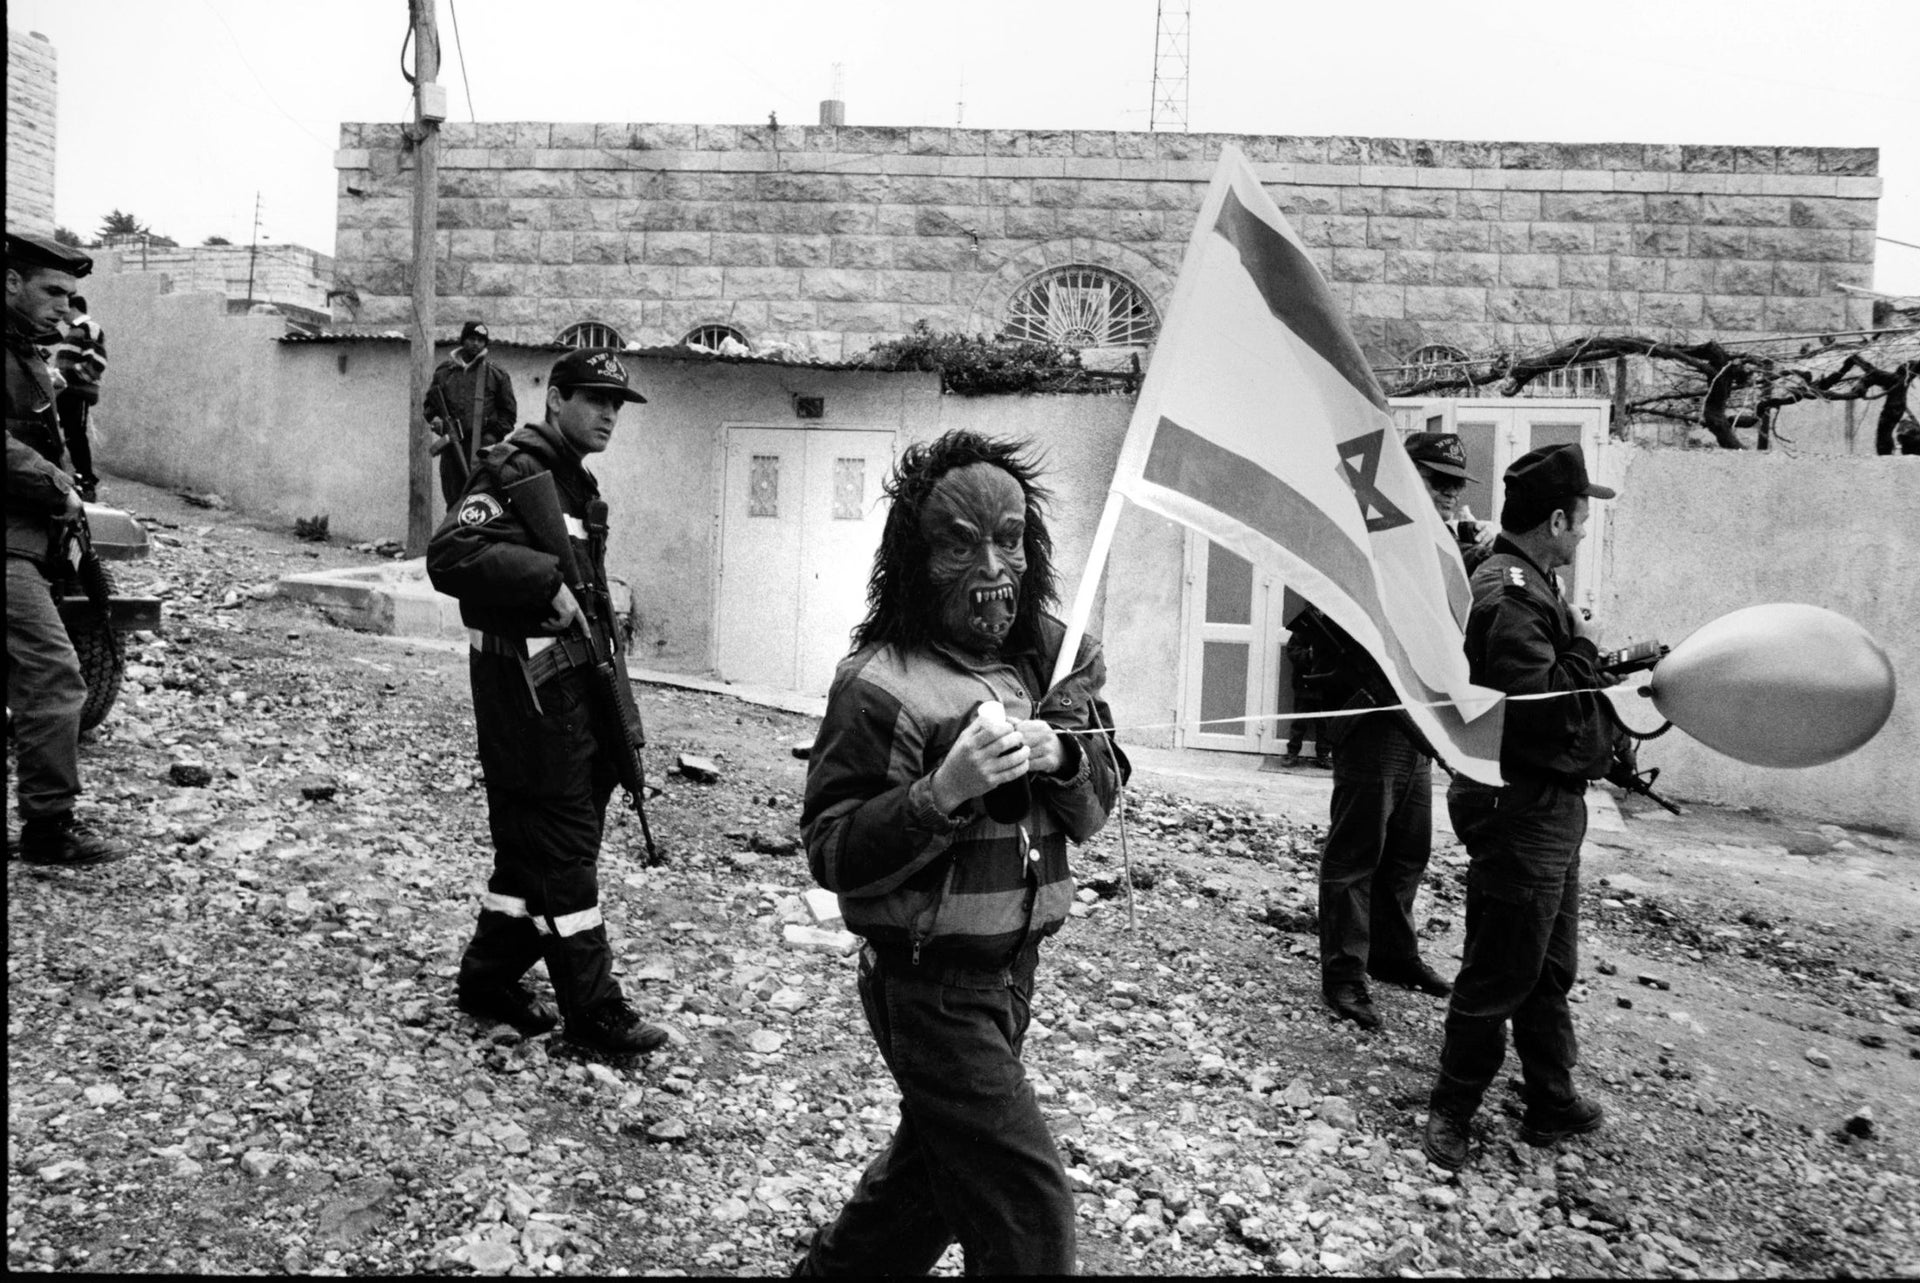 Israeli soldiers in Hebron in the '90s.